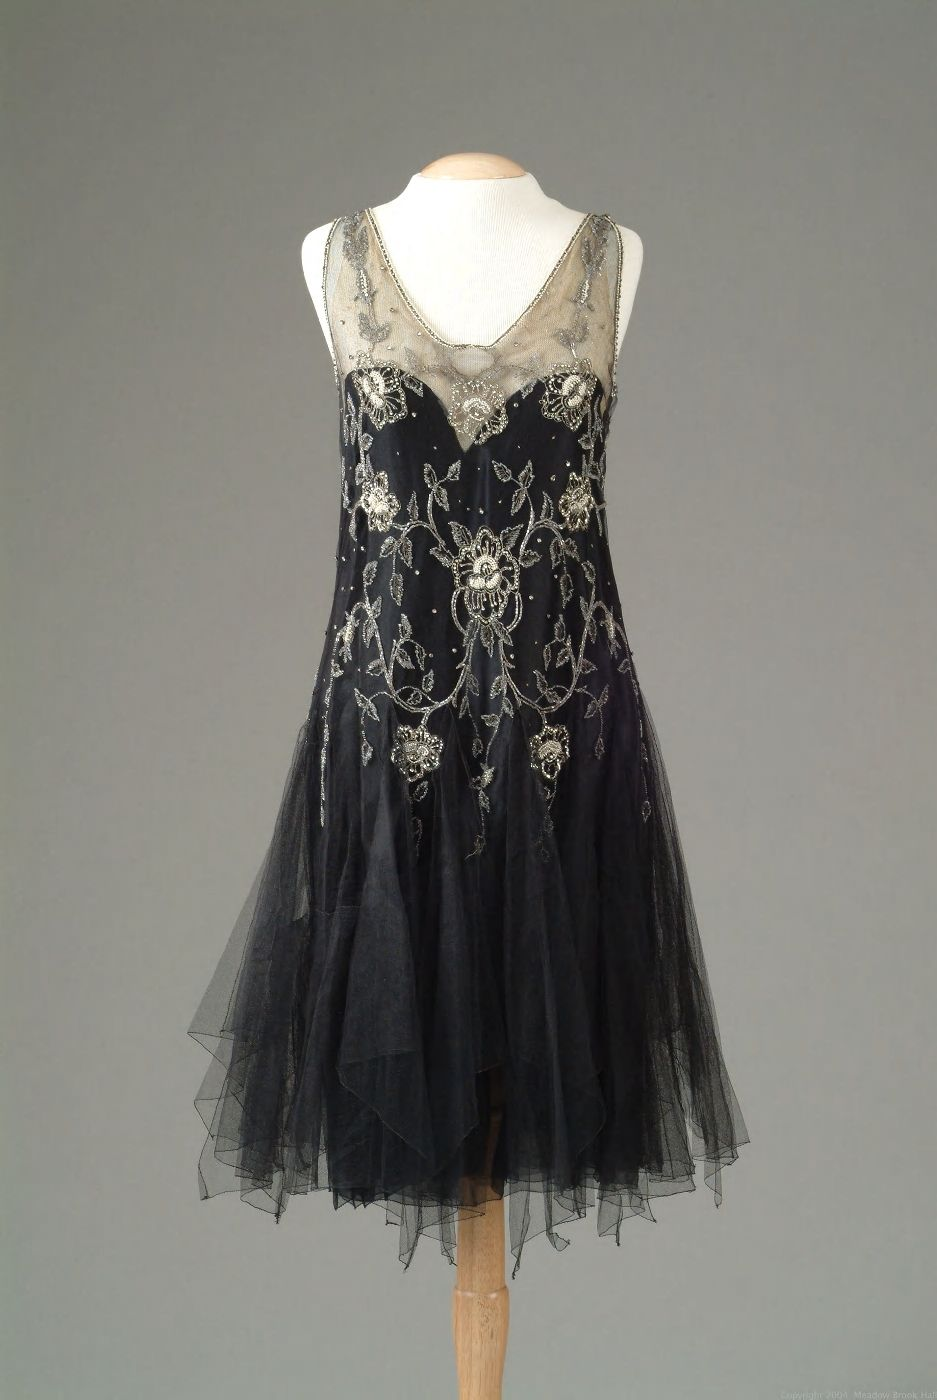 Gown of black netting with seed pearl and rhinestone embroidery in a